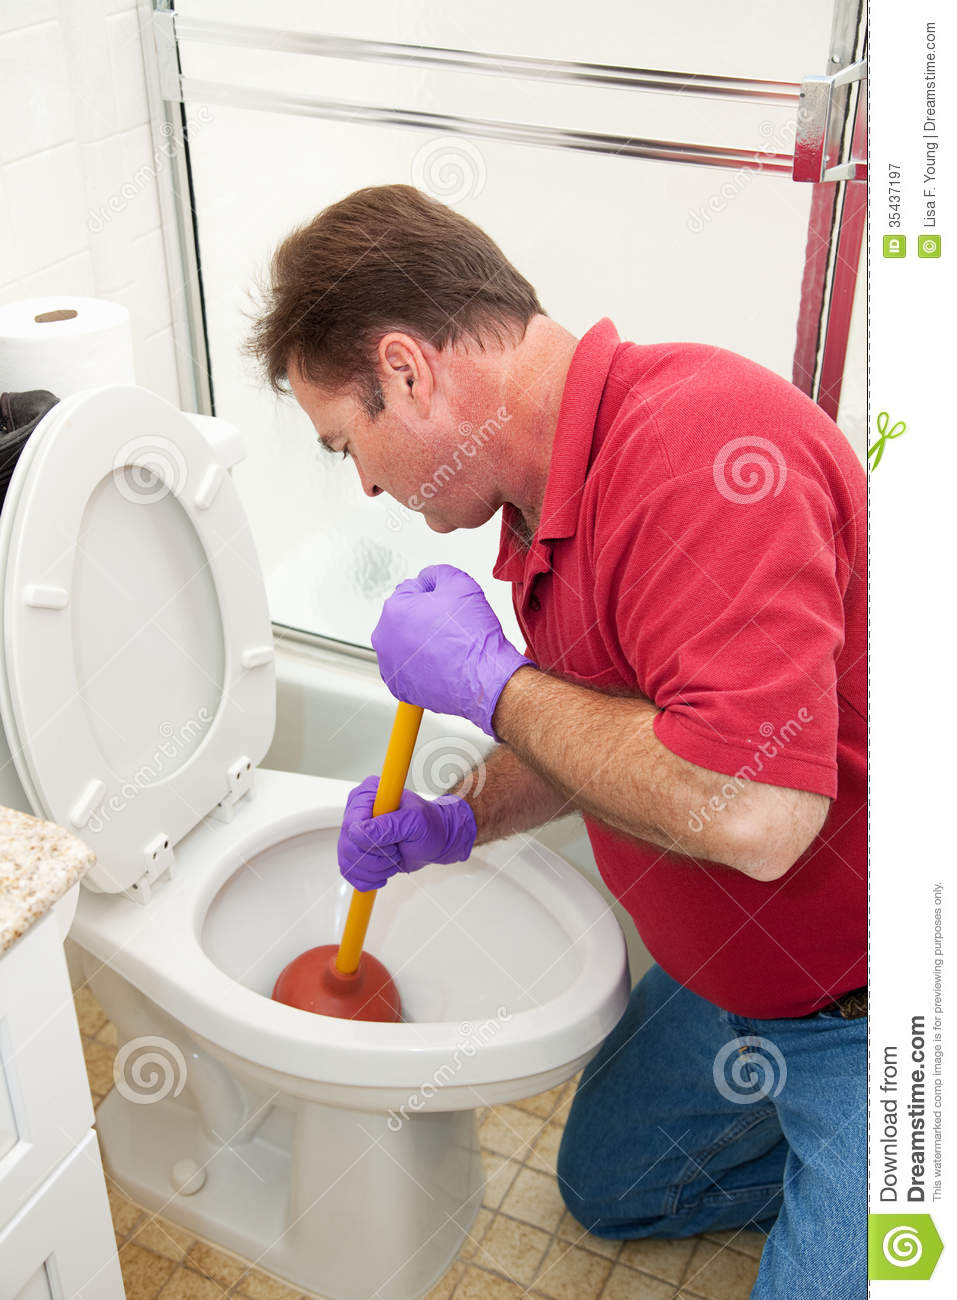 Man Using Plunger In Toilet Stock Image - Image of mature, plumber ...